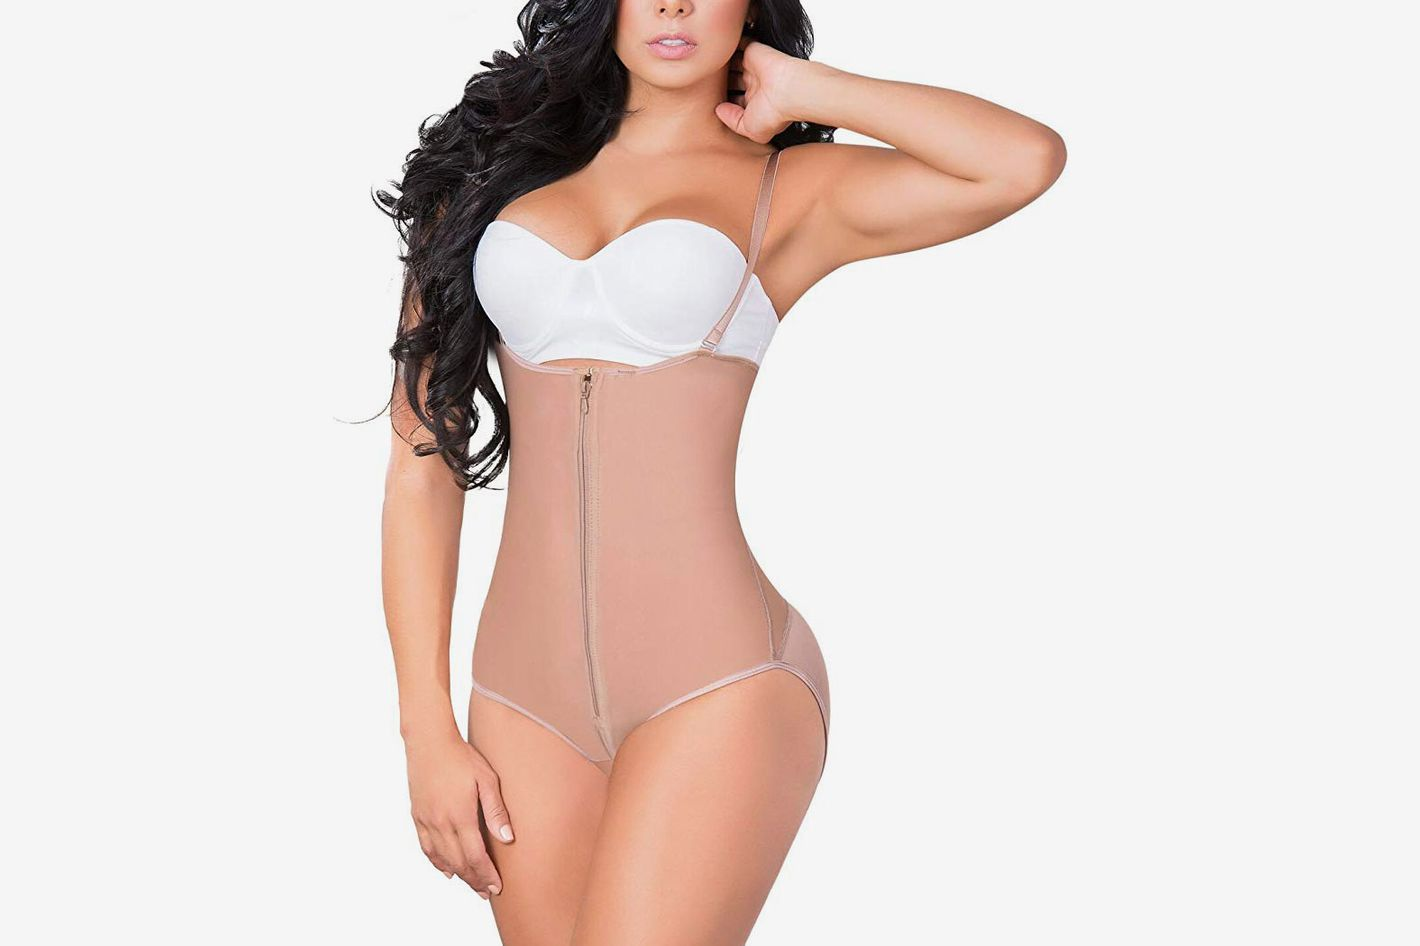 f1bc14acb7c81 Jackie London Women s 1040 Bodyshaper